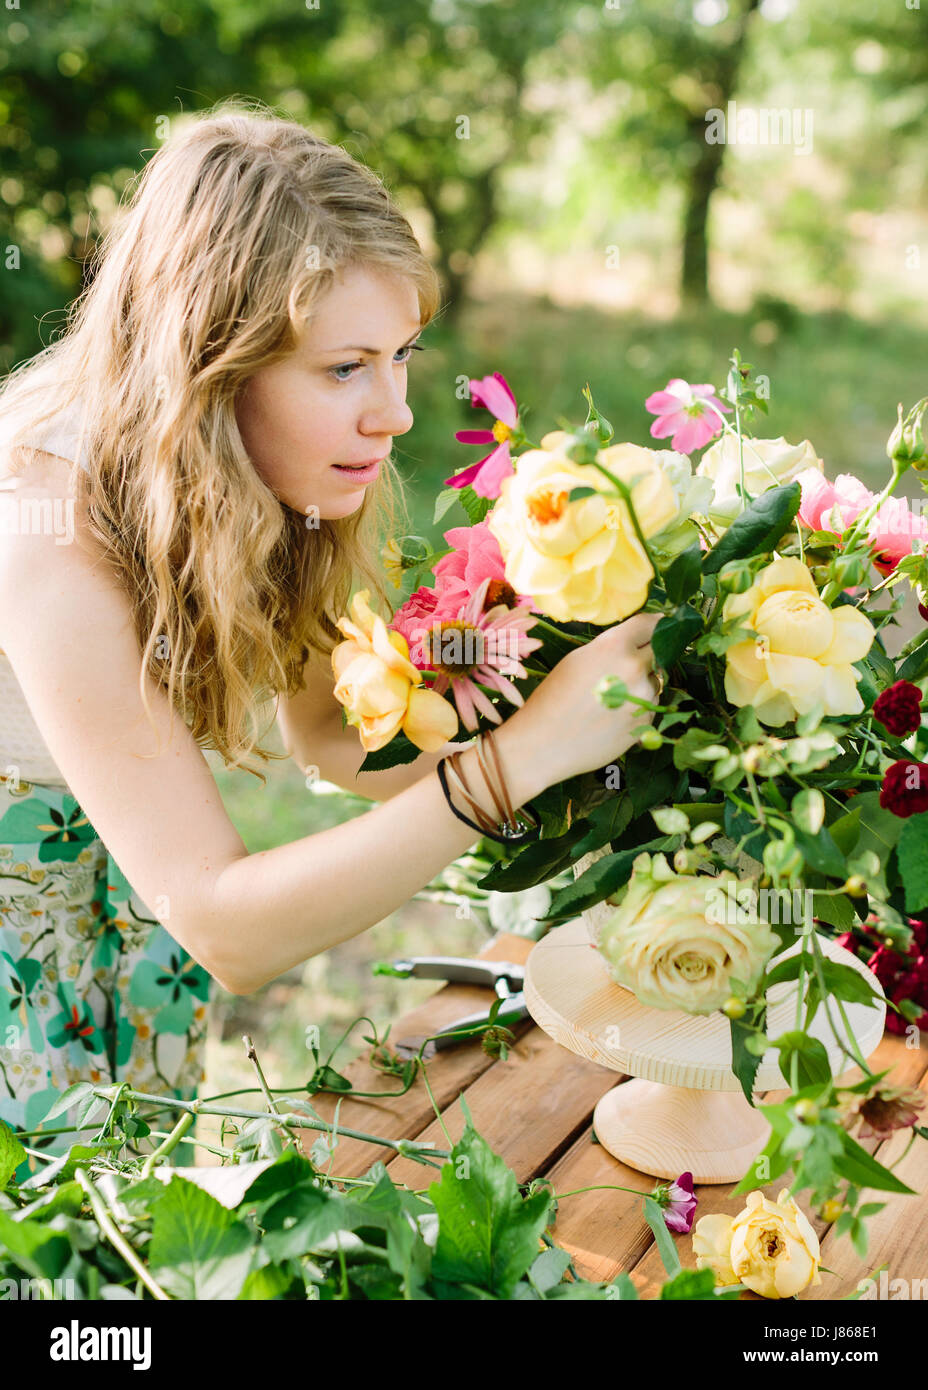 celebration, wedding, flora, beauty of nature concept - blond blue-eyed young woman arranges flower composition - Stock Image